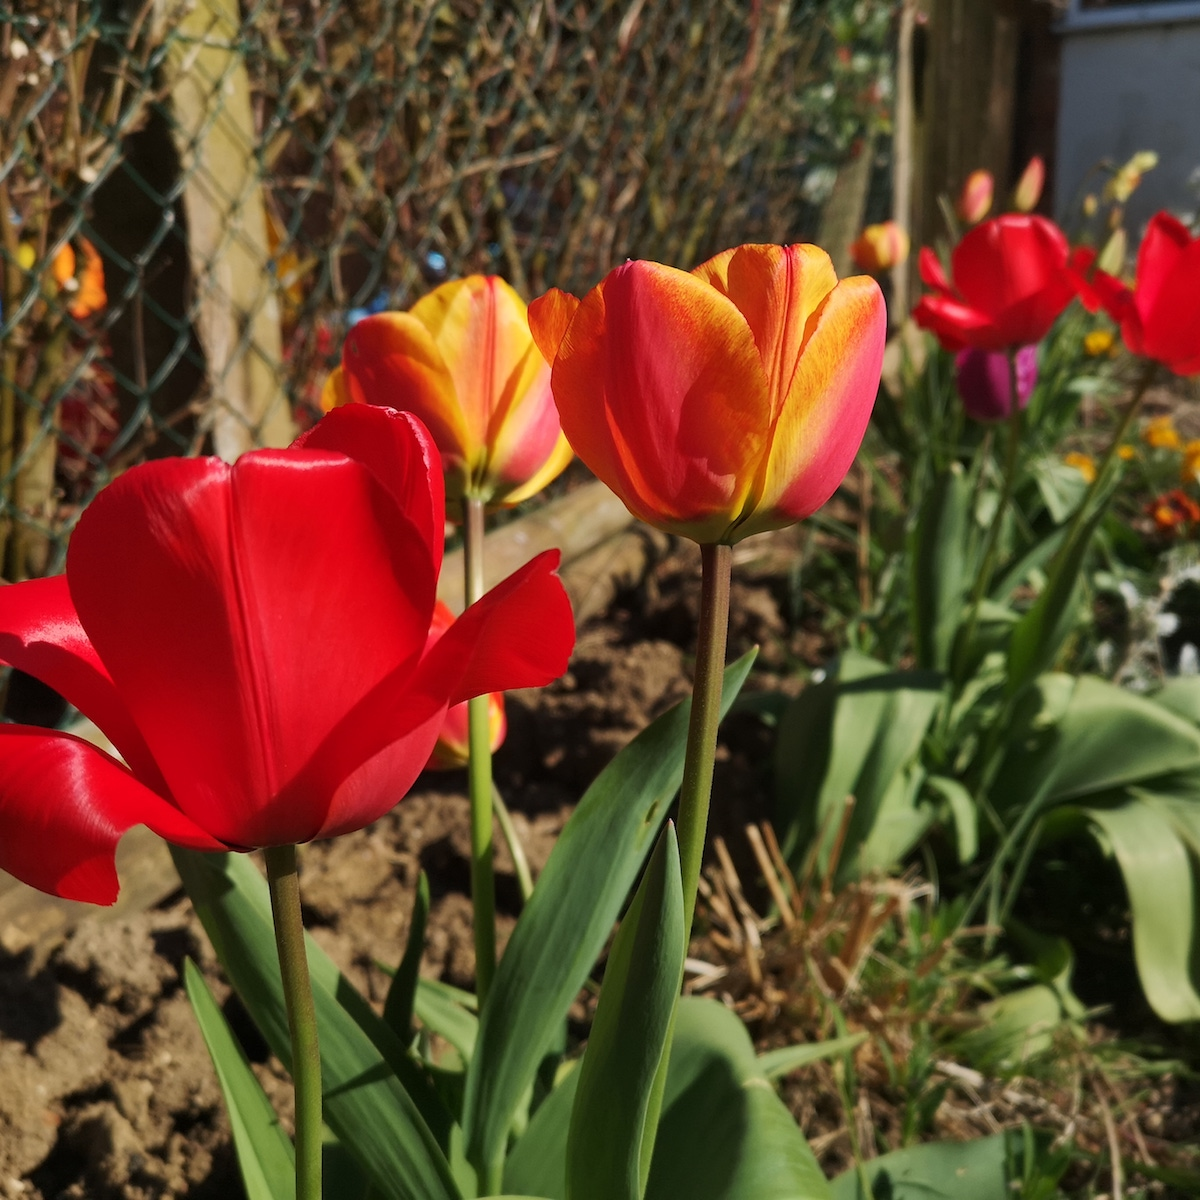 A row of mixed tulips